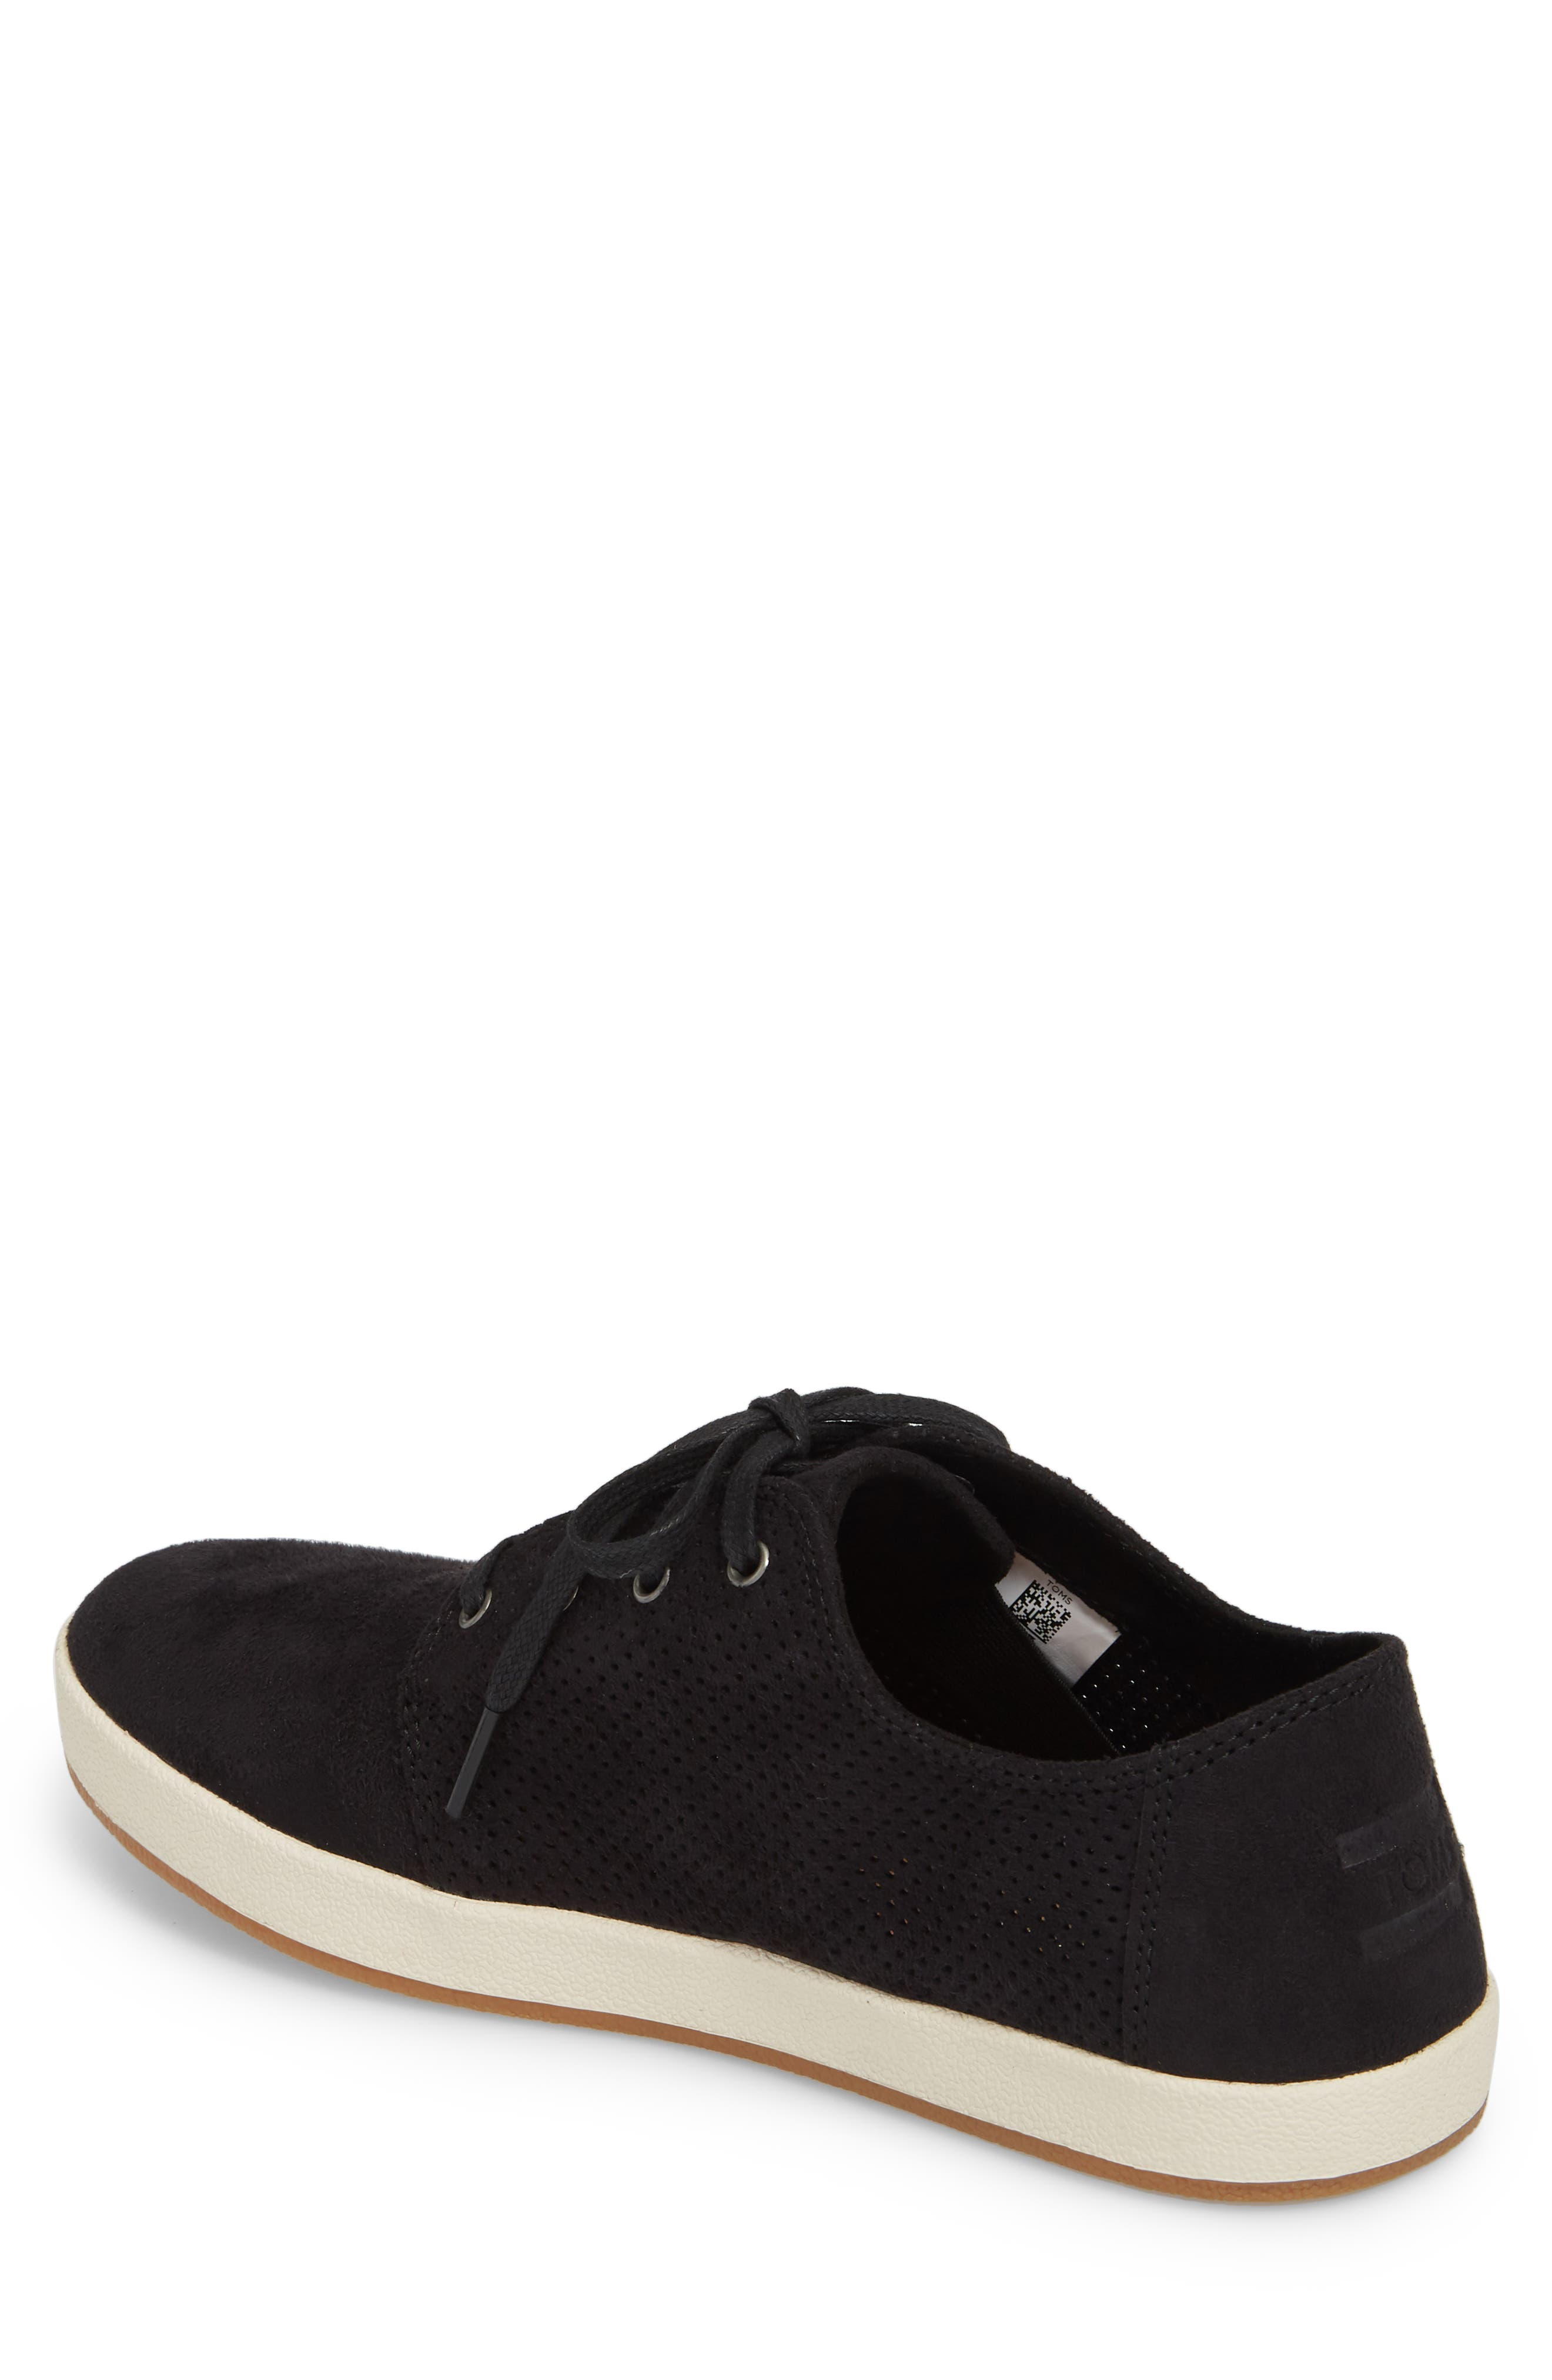 Payton Perforated Sneaker,                             Alternate thumbnail 2, color,                             001